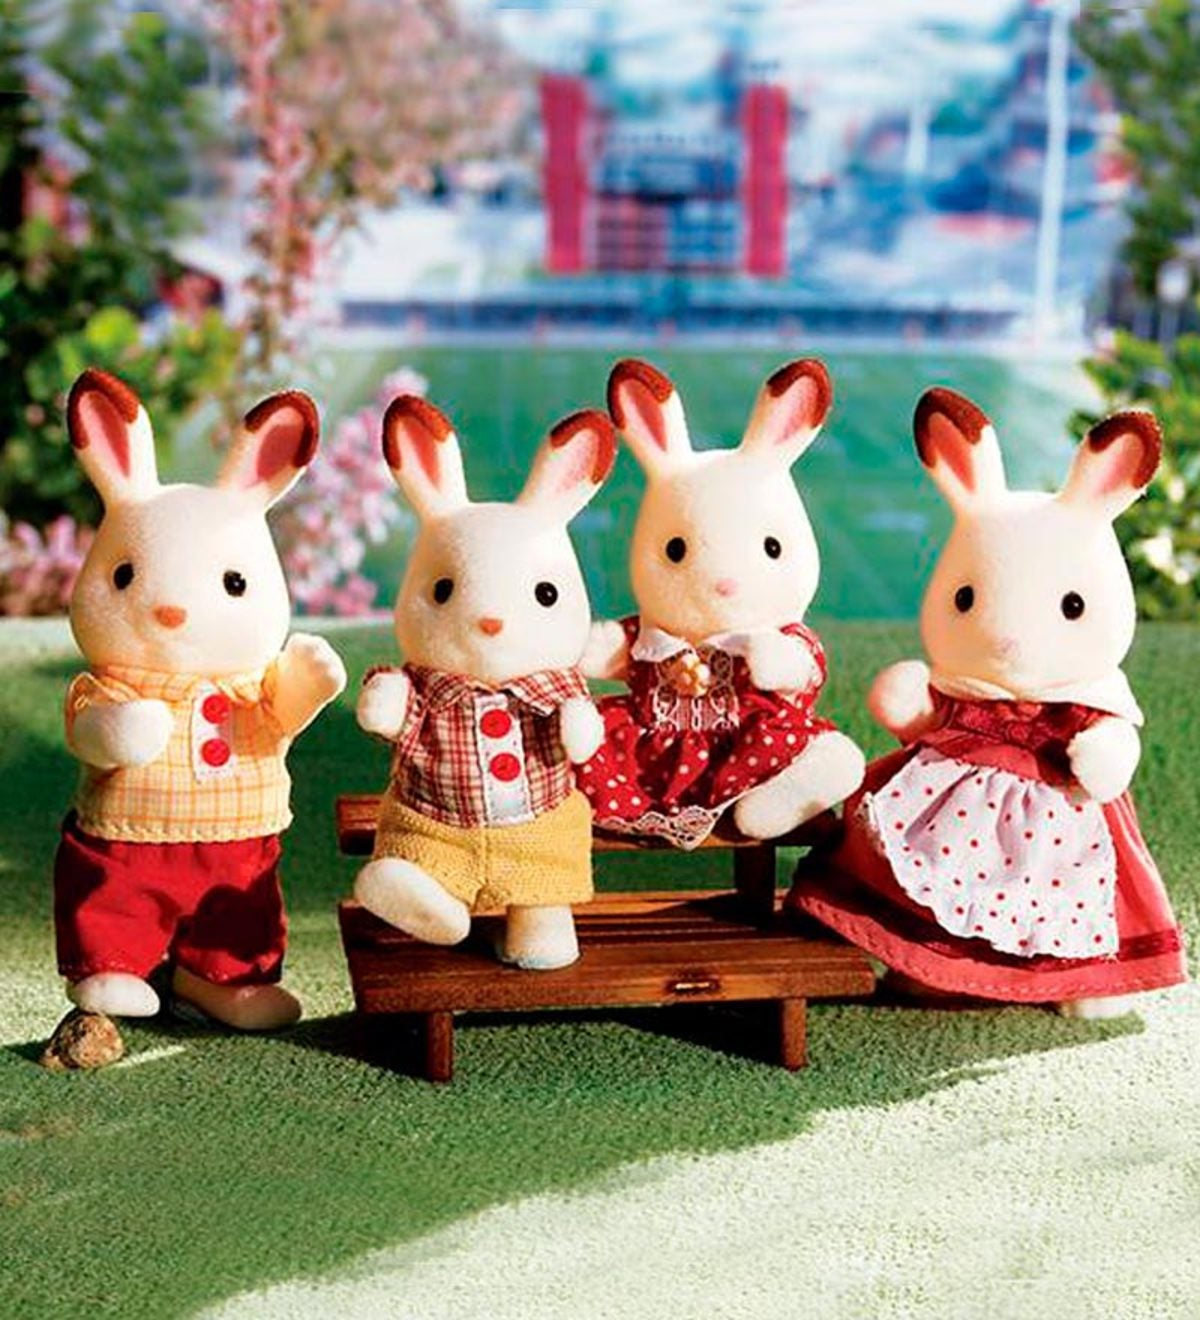 Calico Critters Hopscotch Rabbit Family Hearthsong